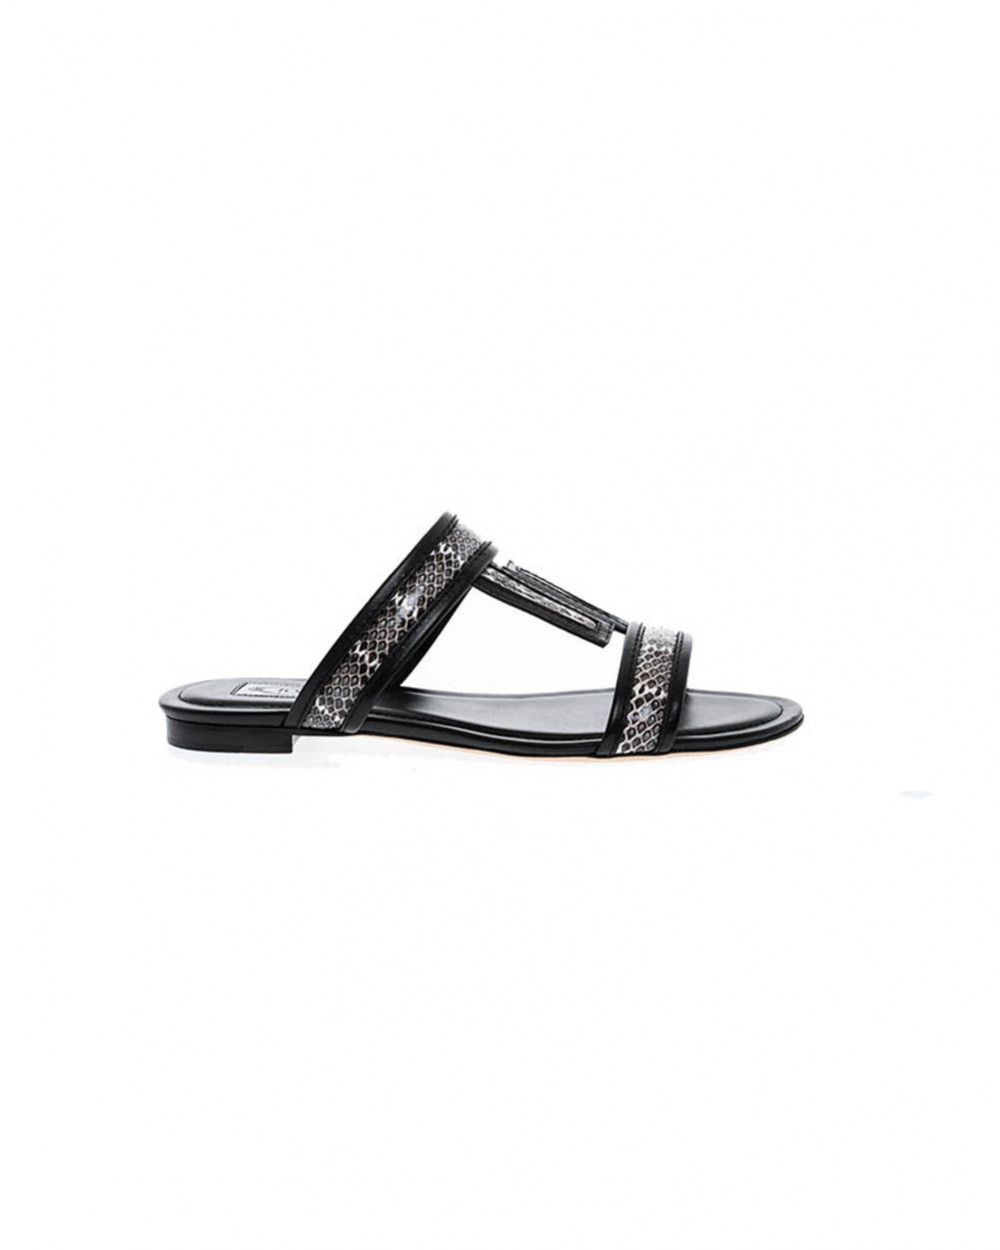 Black mules with snake Tod's for women